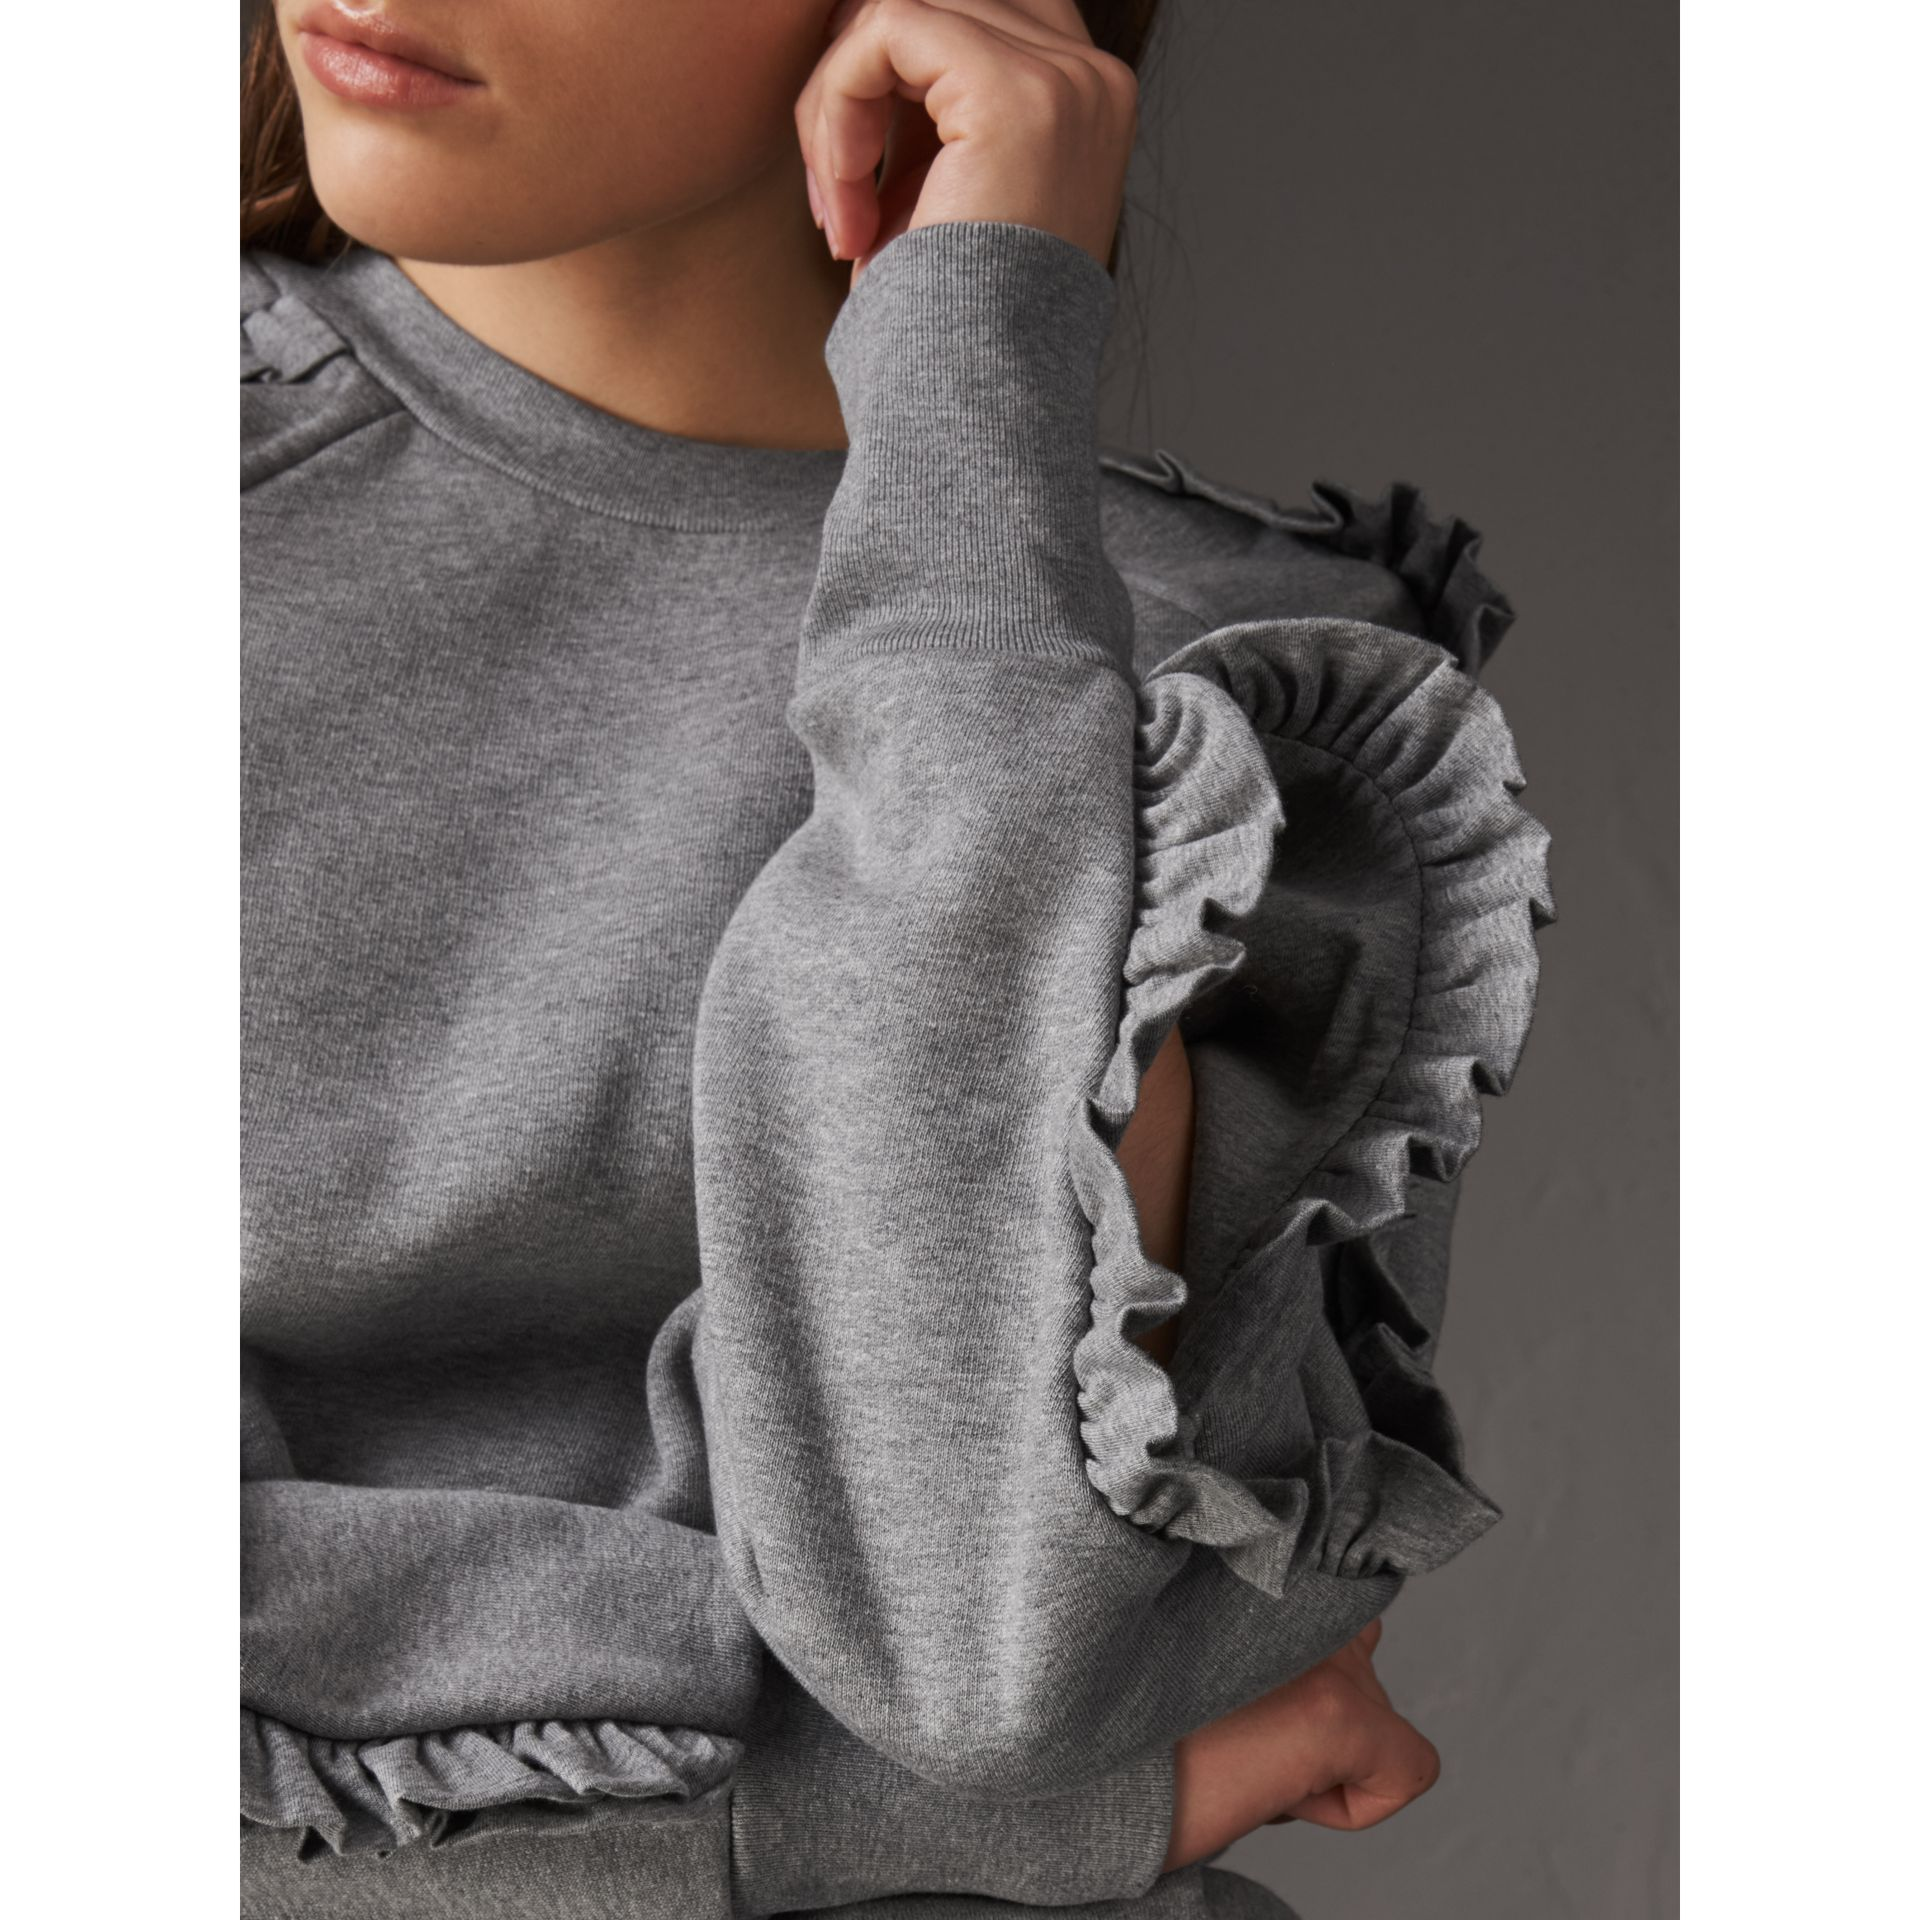 Sweat-shirt à manches à volants (Camaïeu De Gris Pâles) - Femme | Burberry - photo de la galerie 2